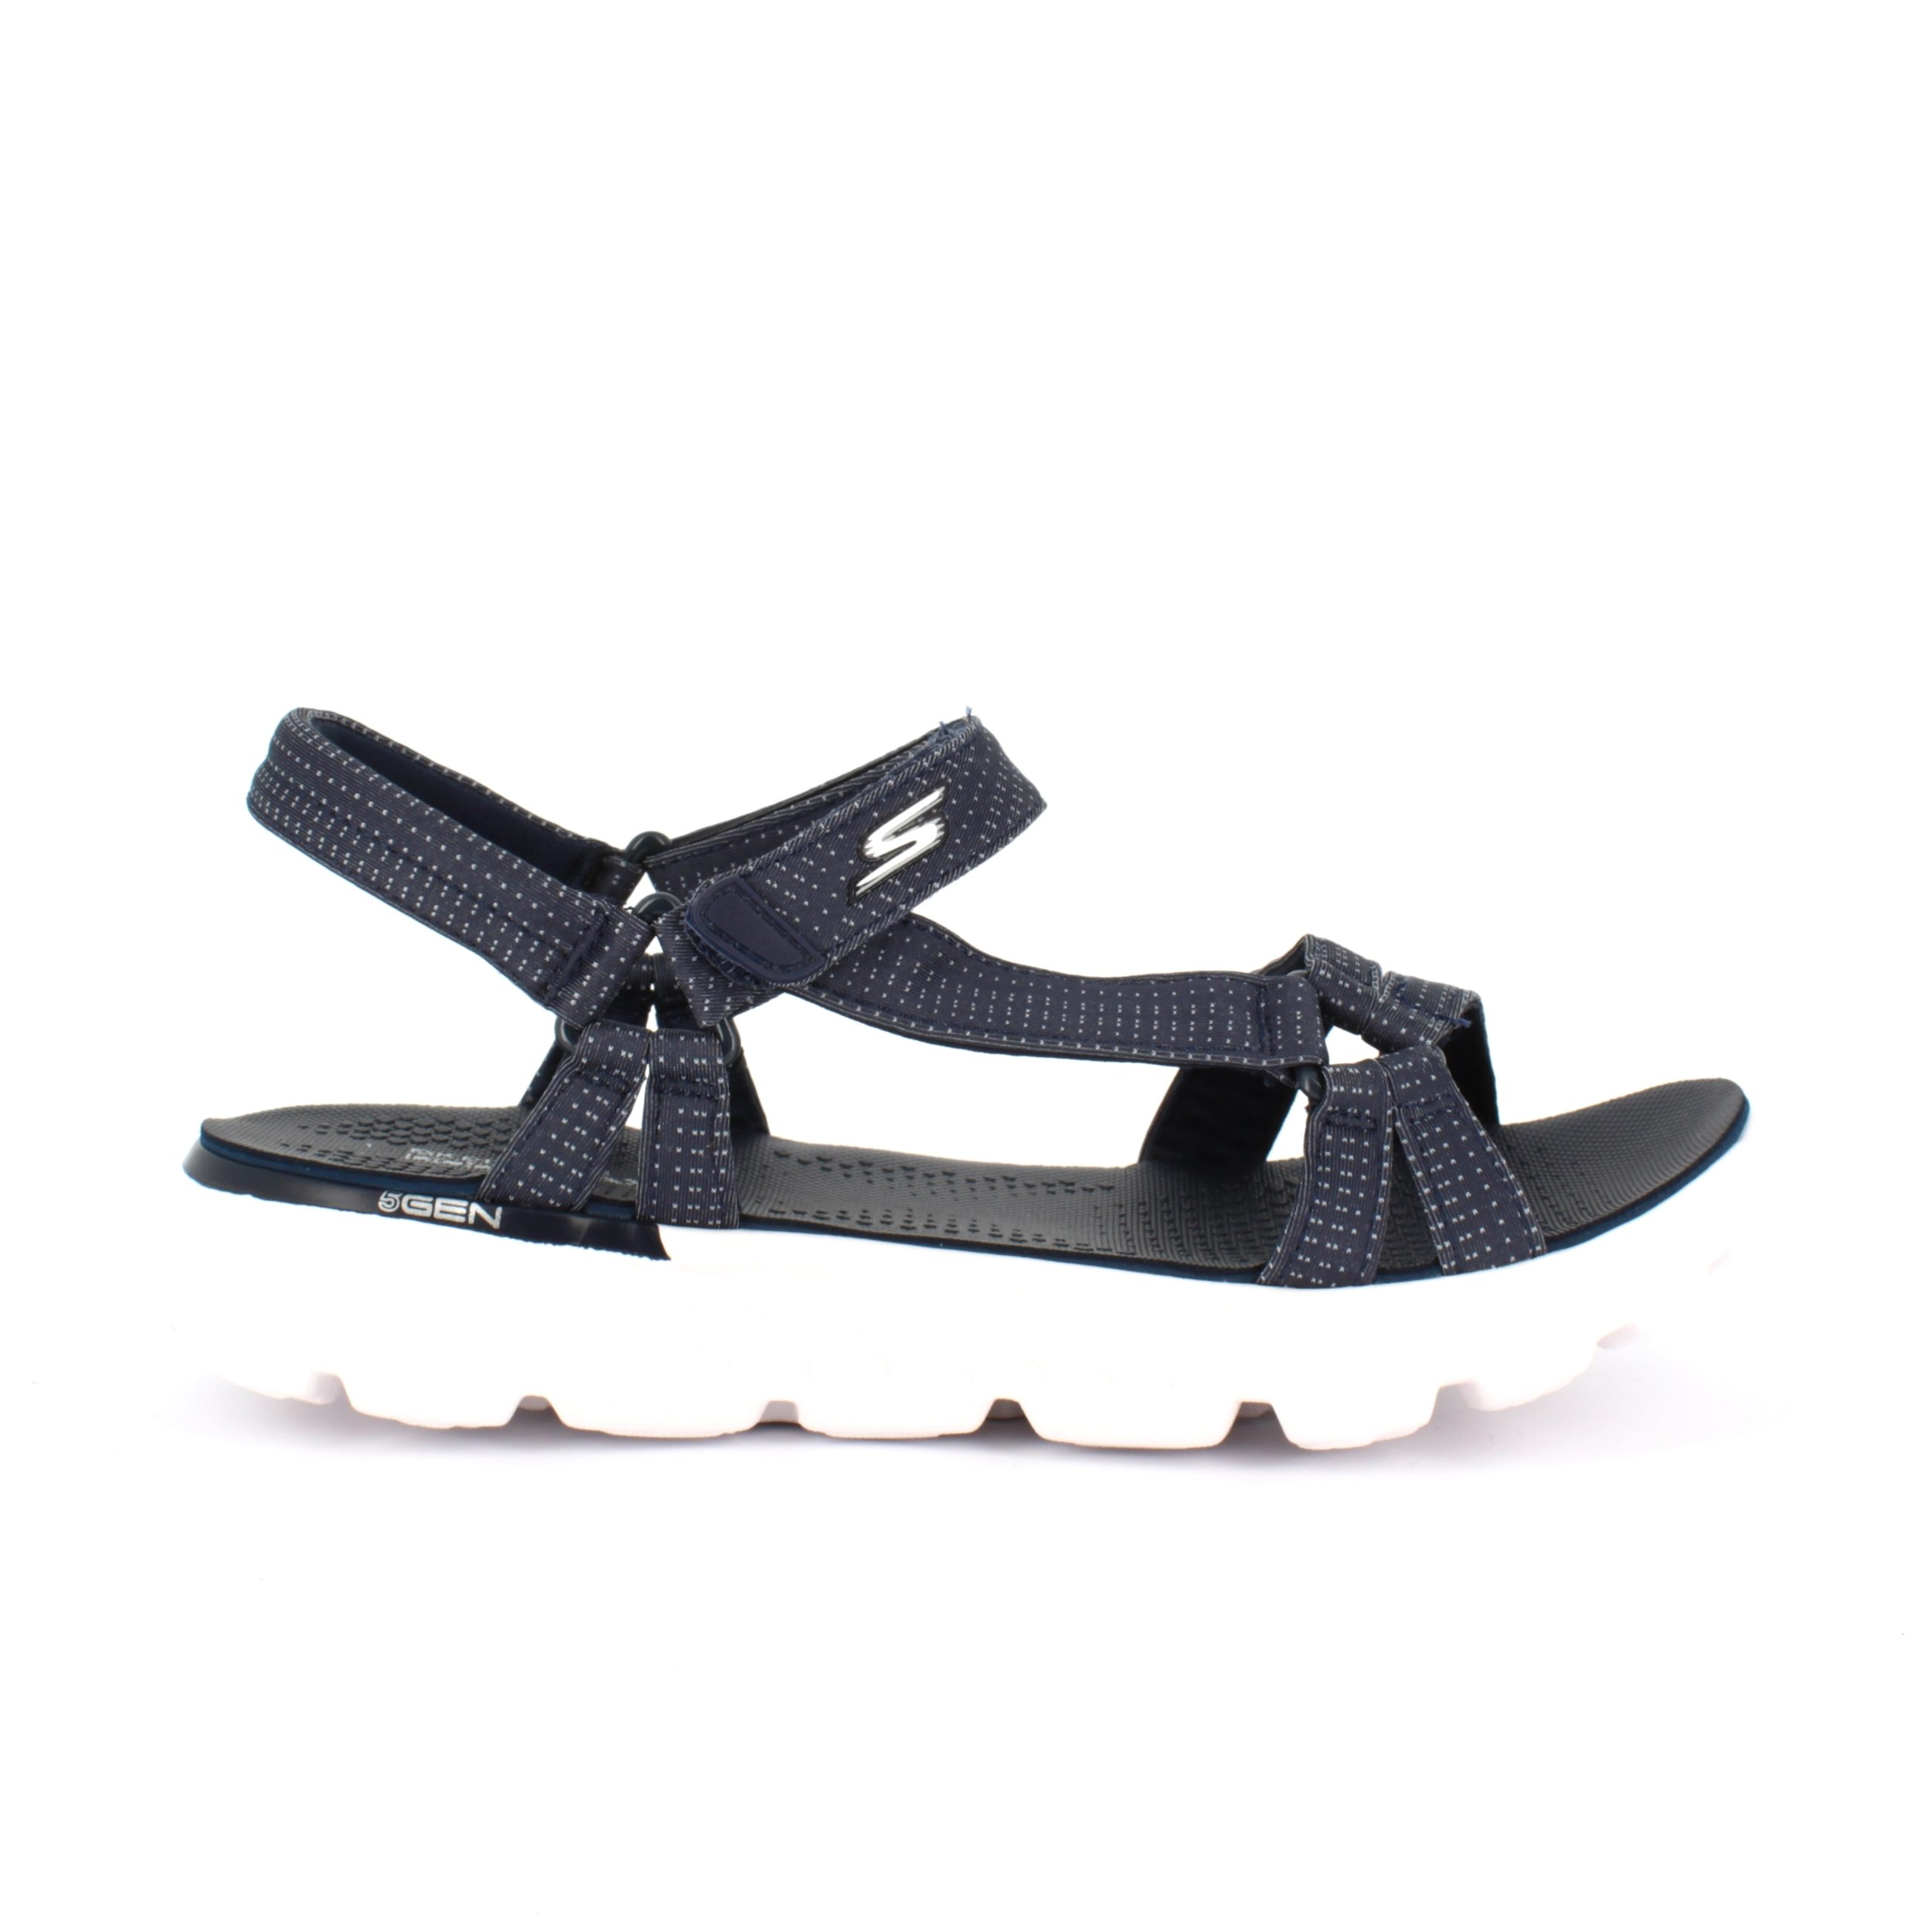 Image of   Skechers sandal med smalle remme - 35